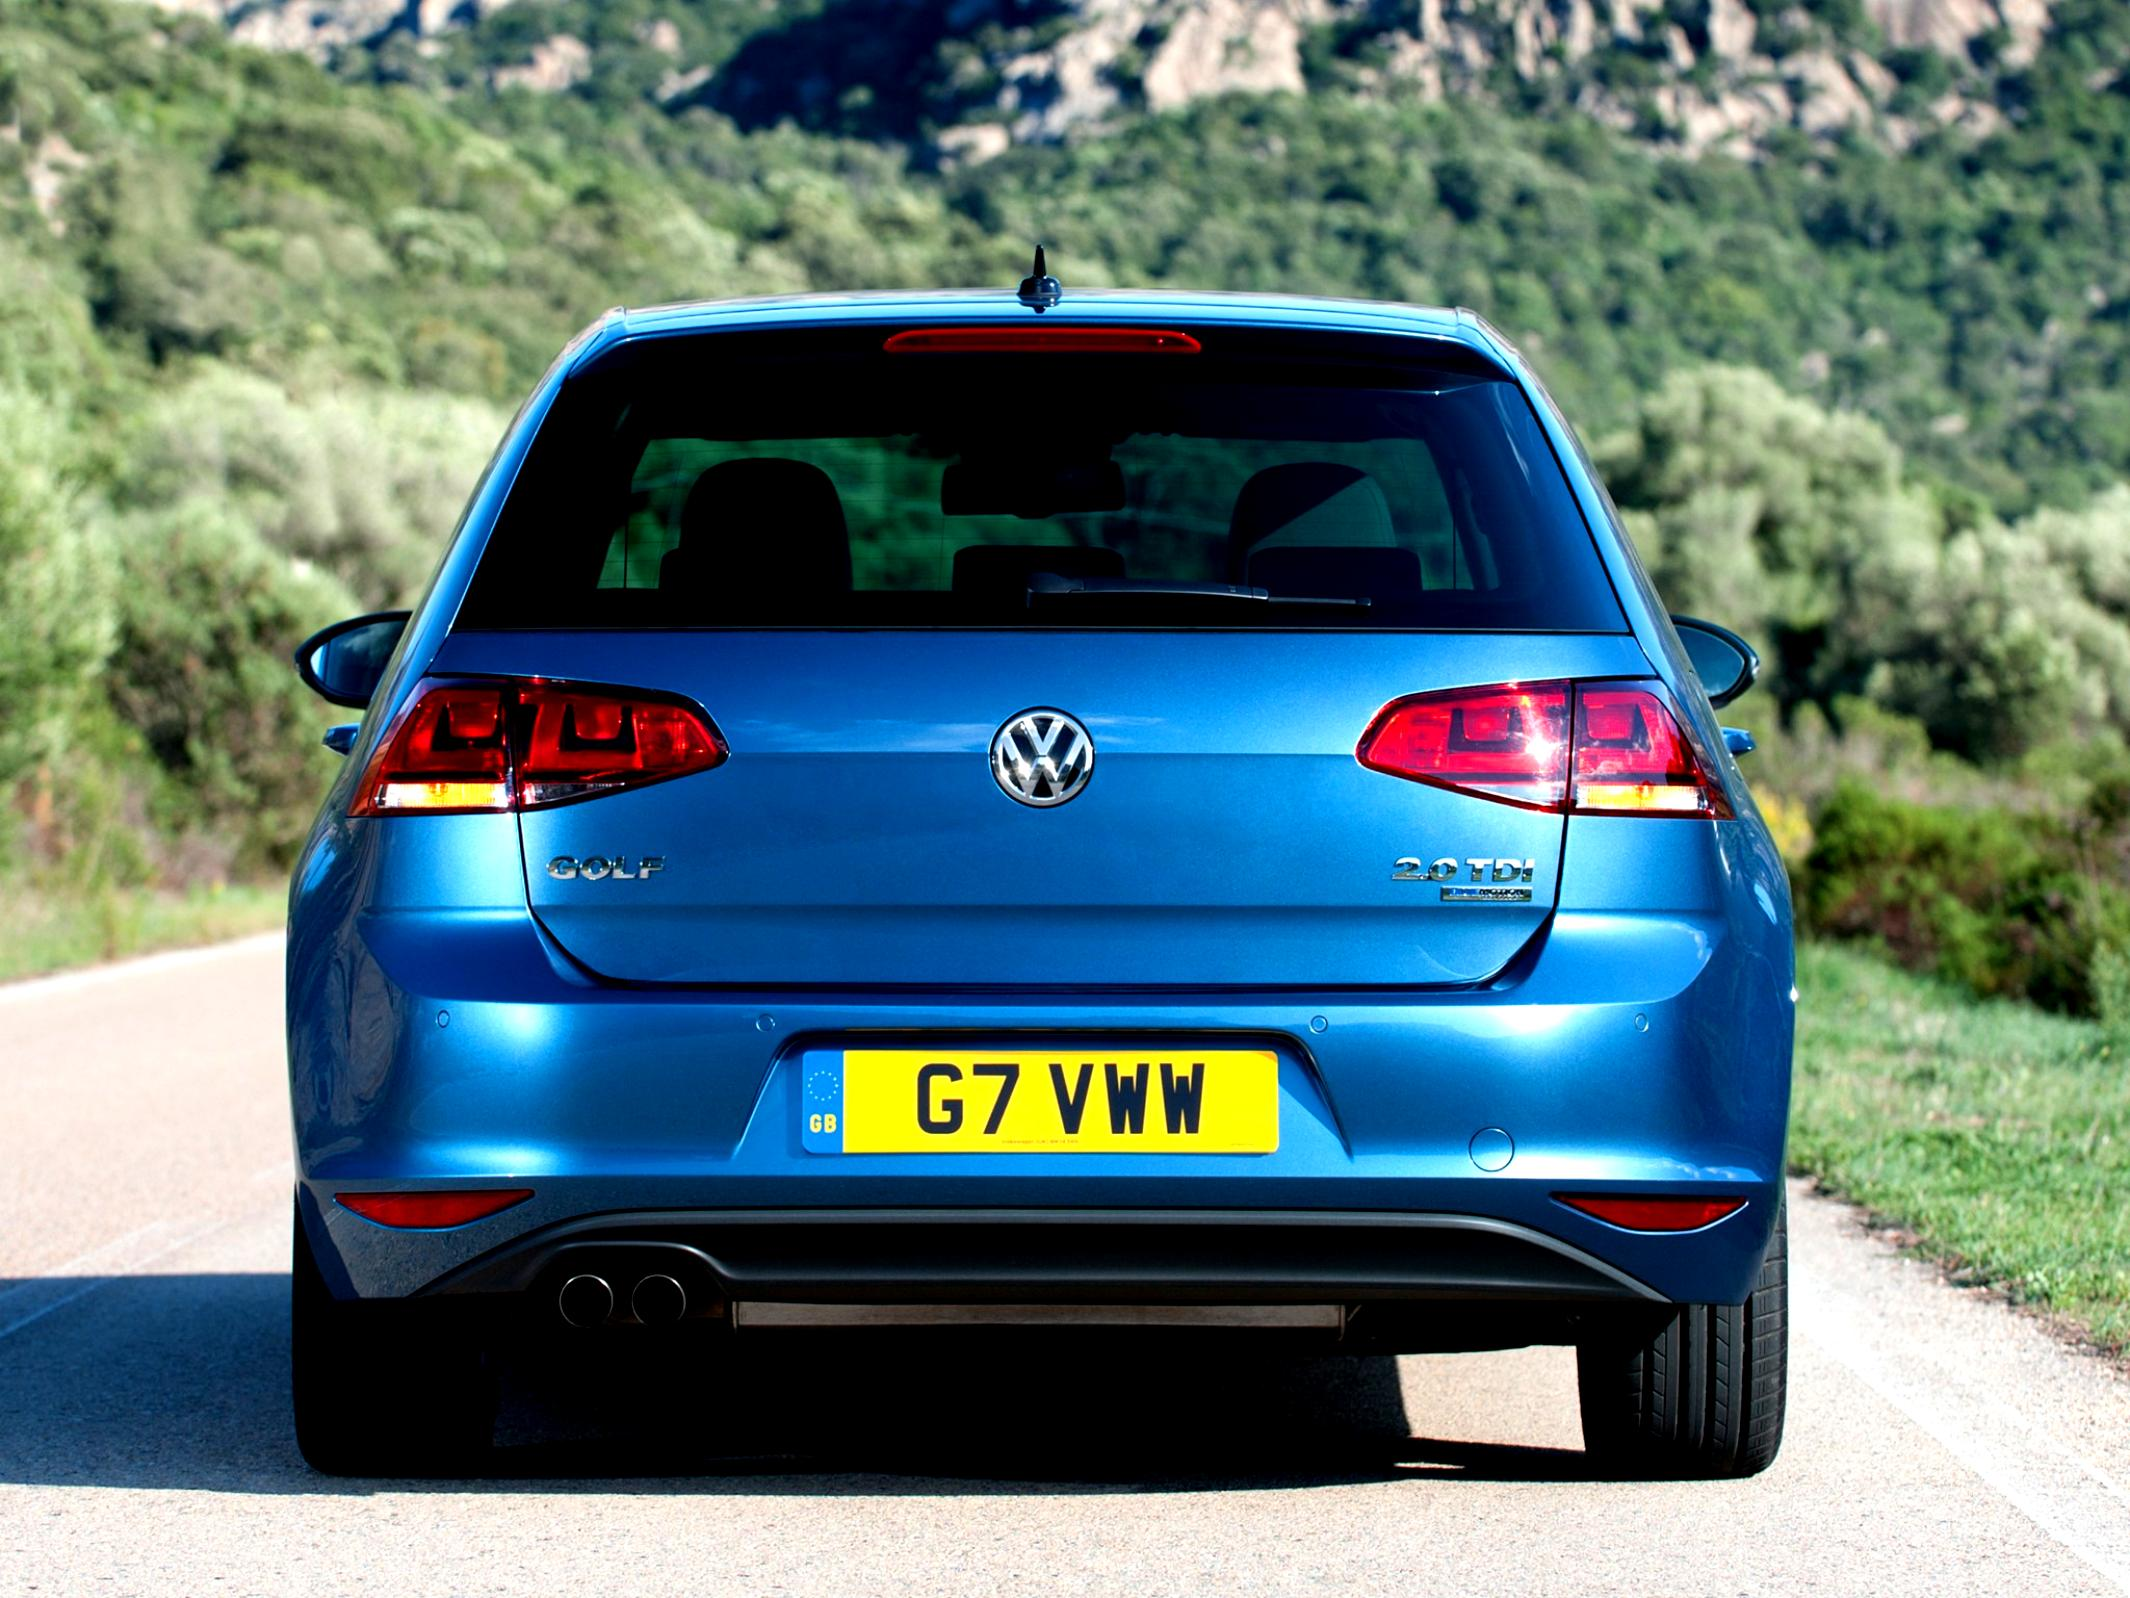 Volkswagen Golf VII 5 Doors 2012 #53